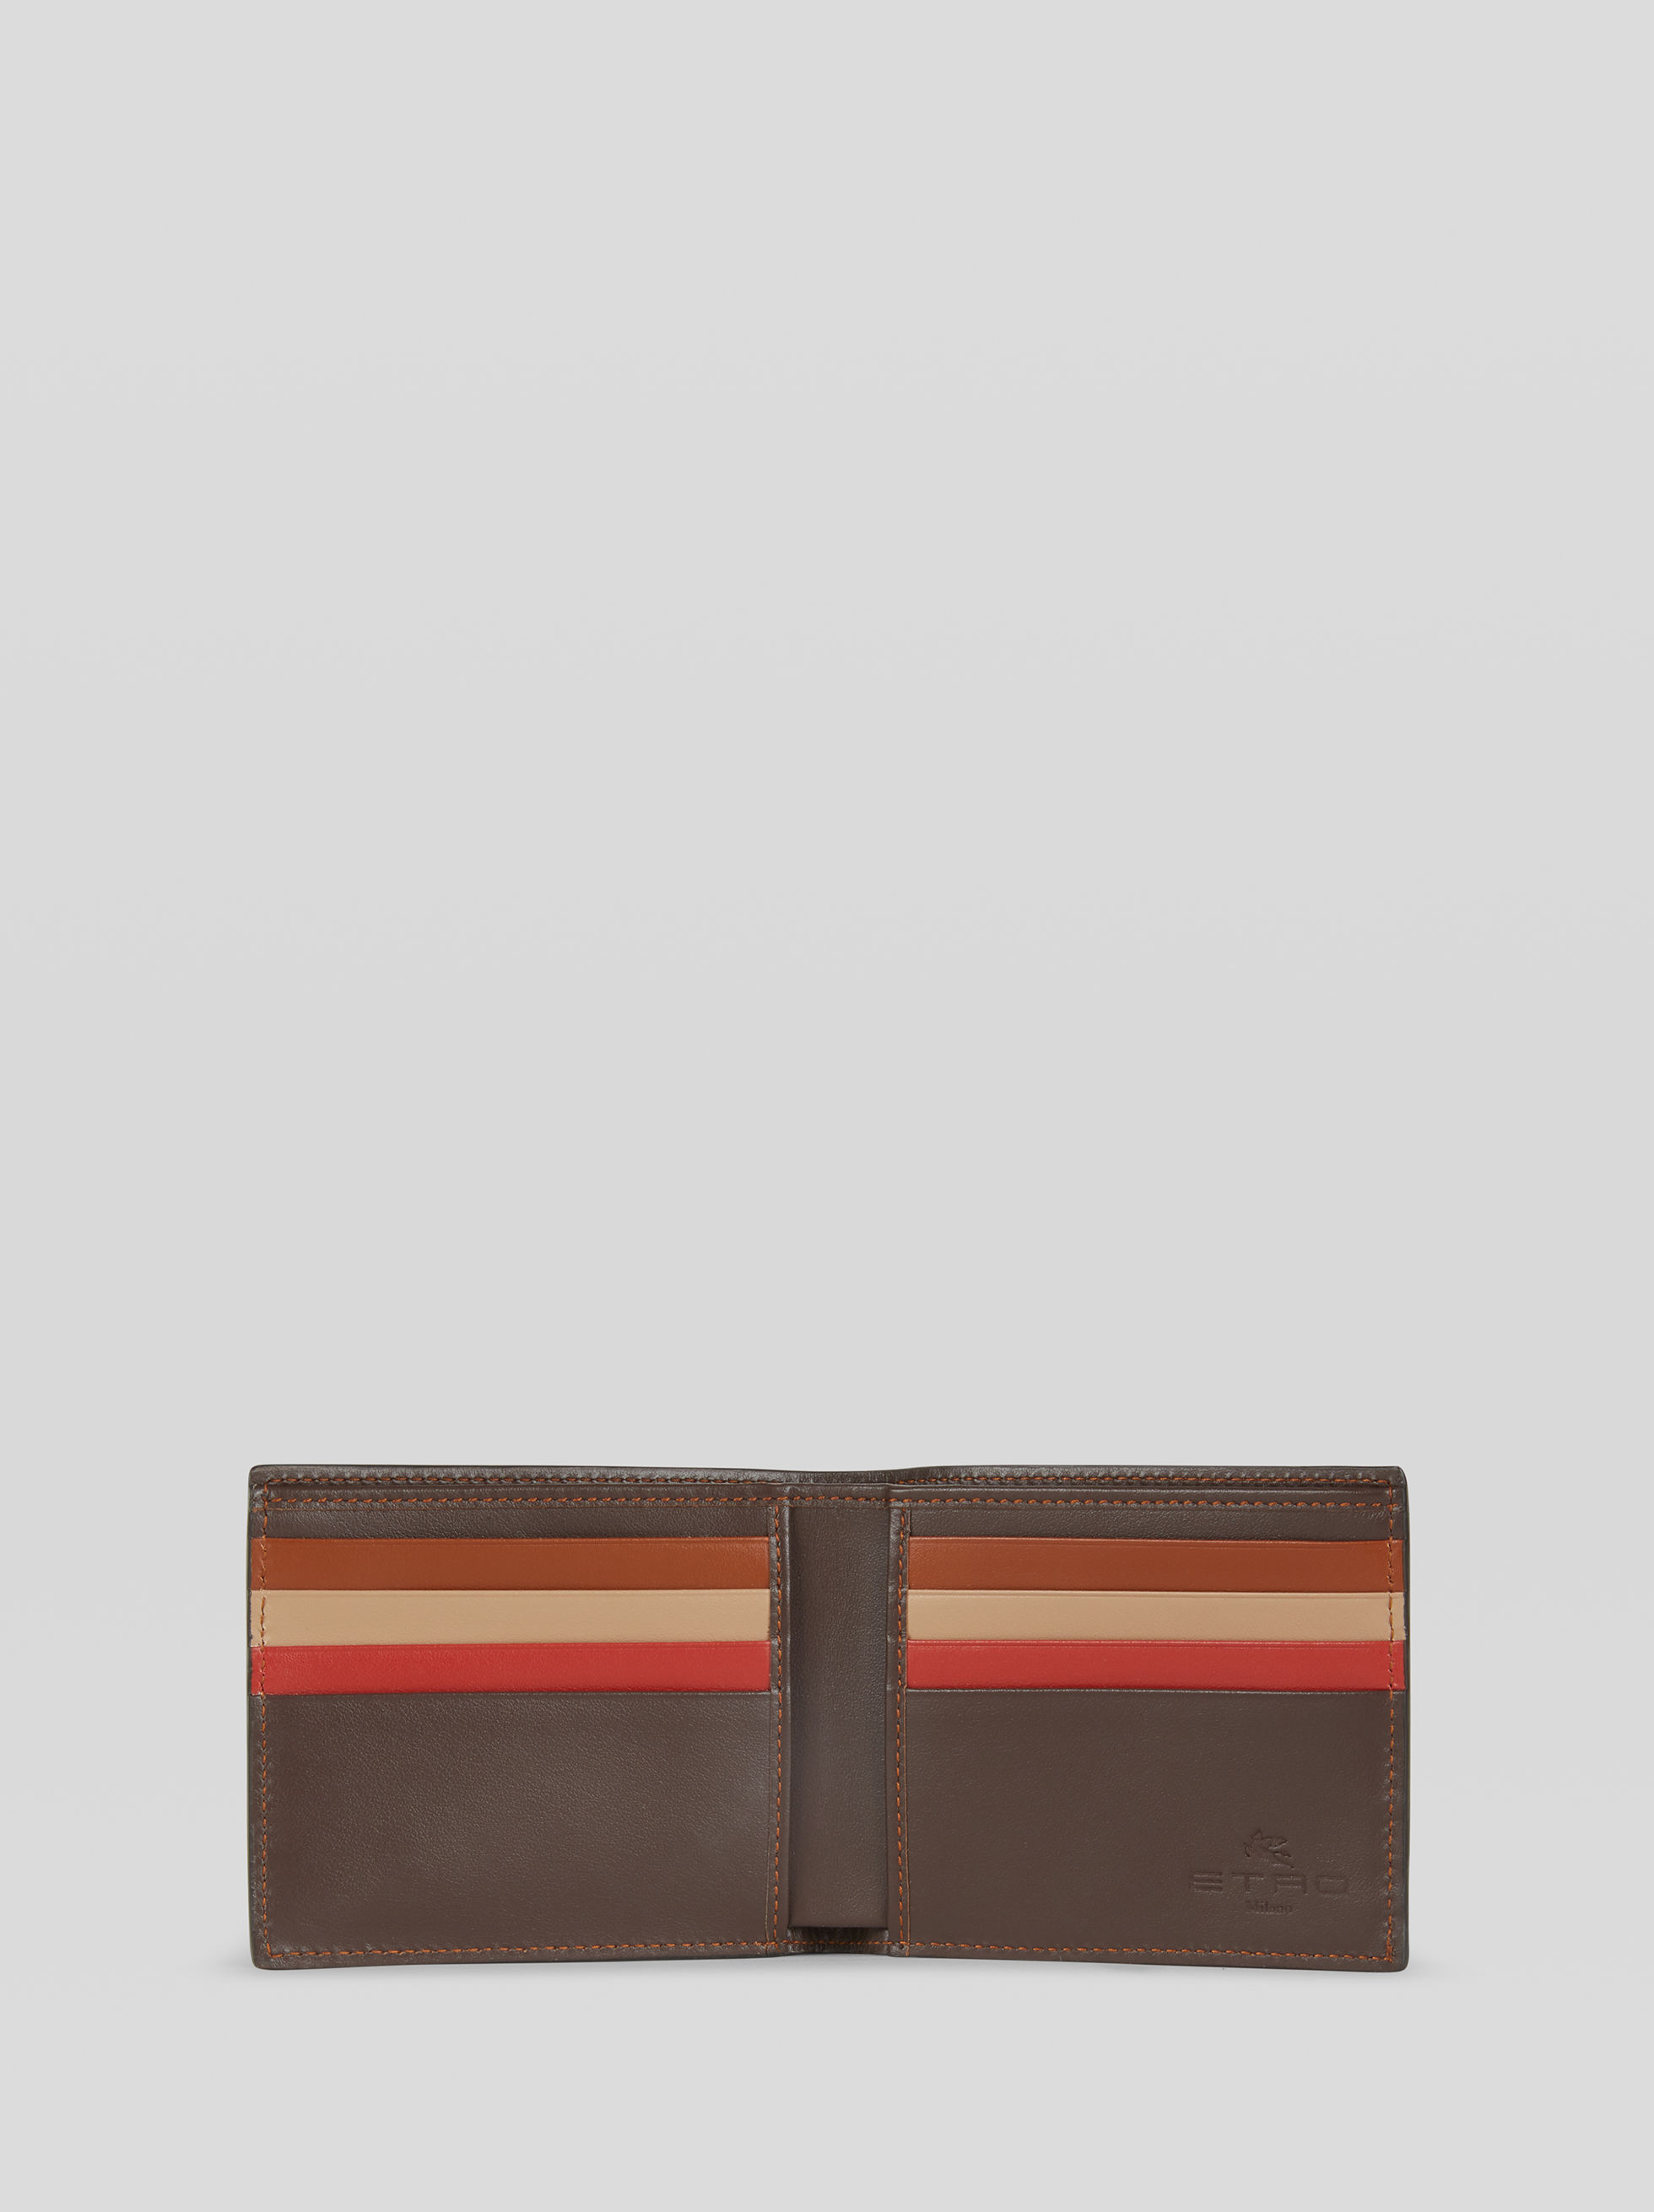 LEATHER WALLET WITH PEGASO